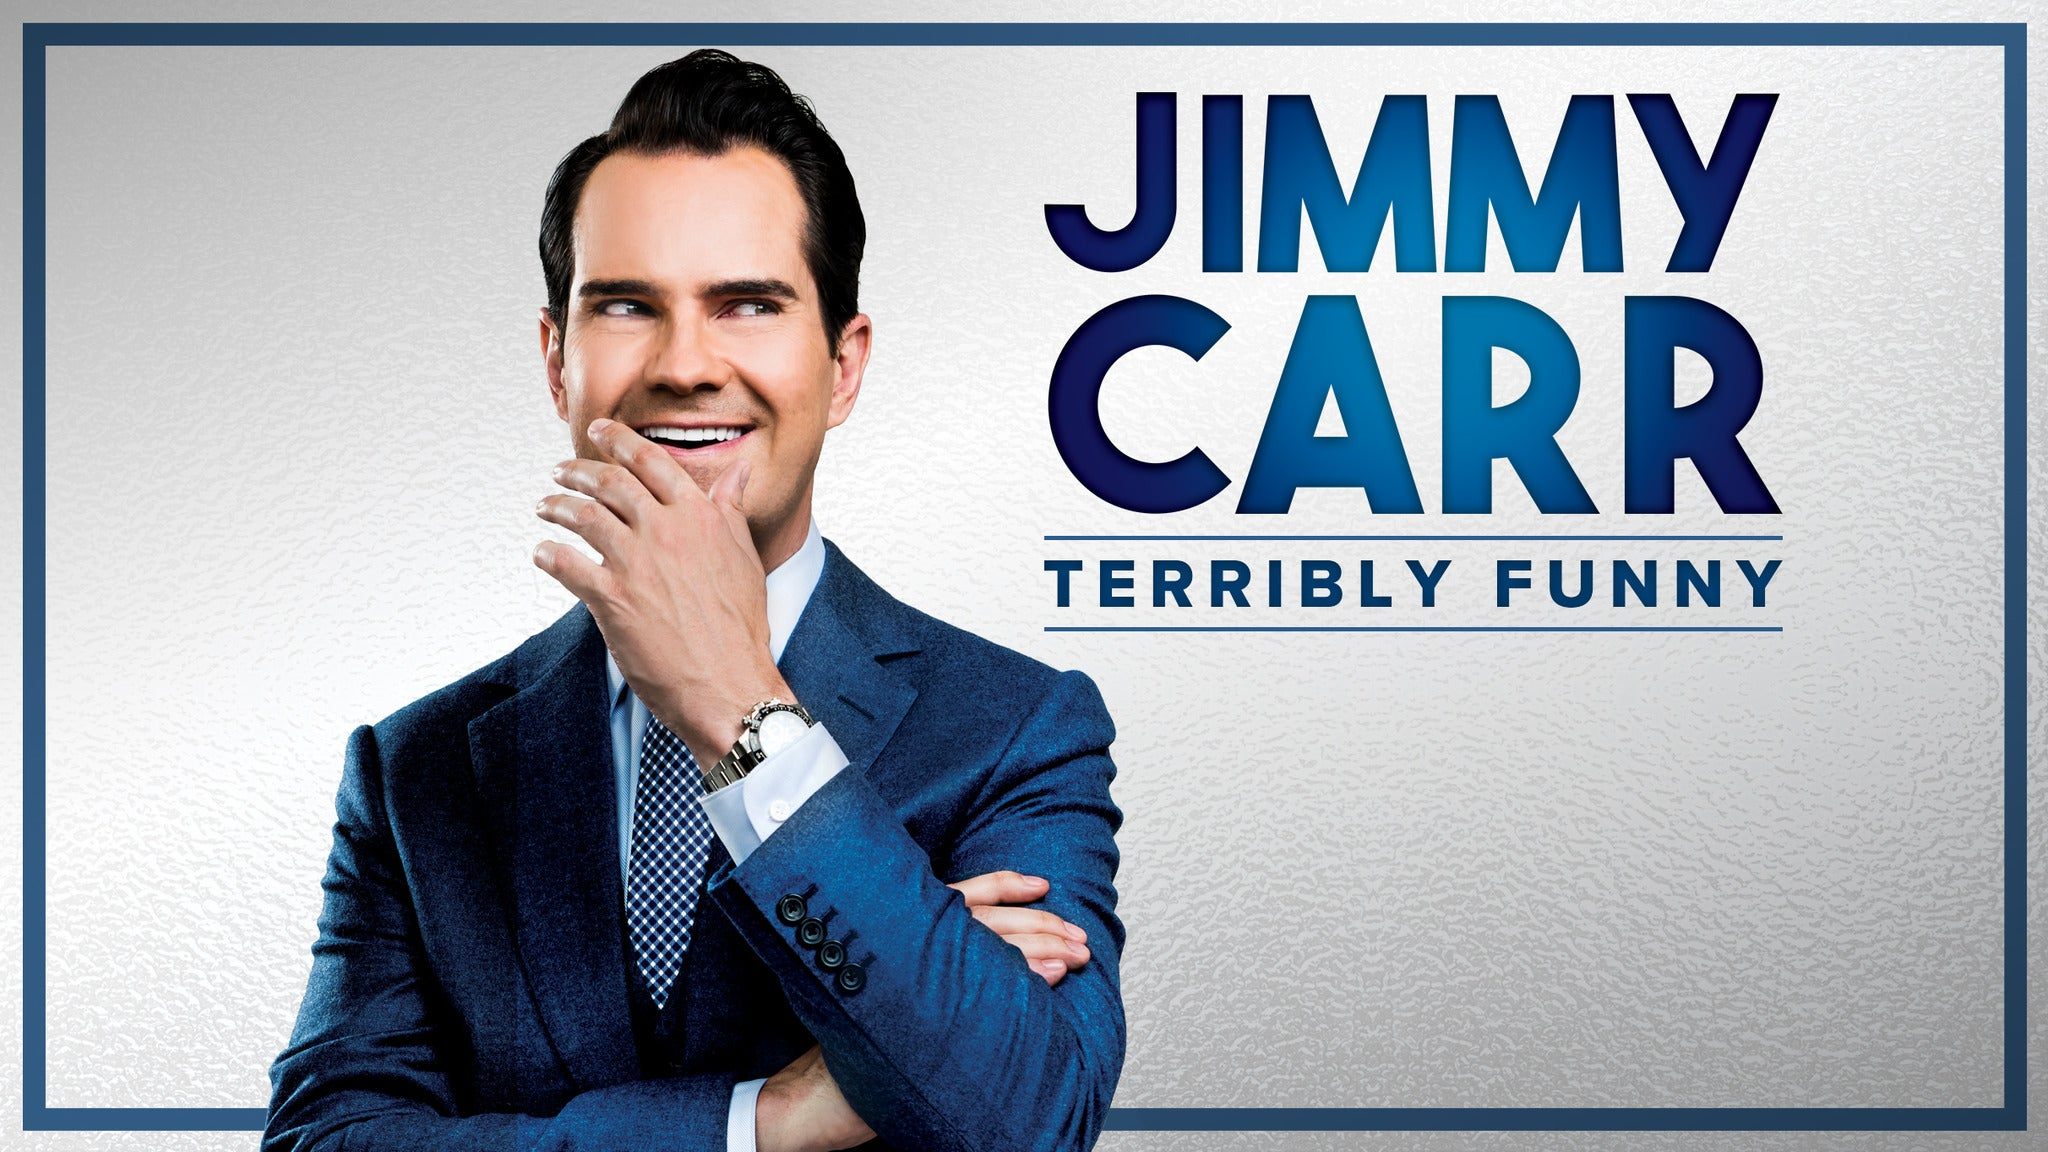 Jimmy Carr: Terribly Funny, Late Show